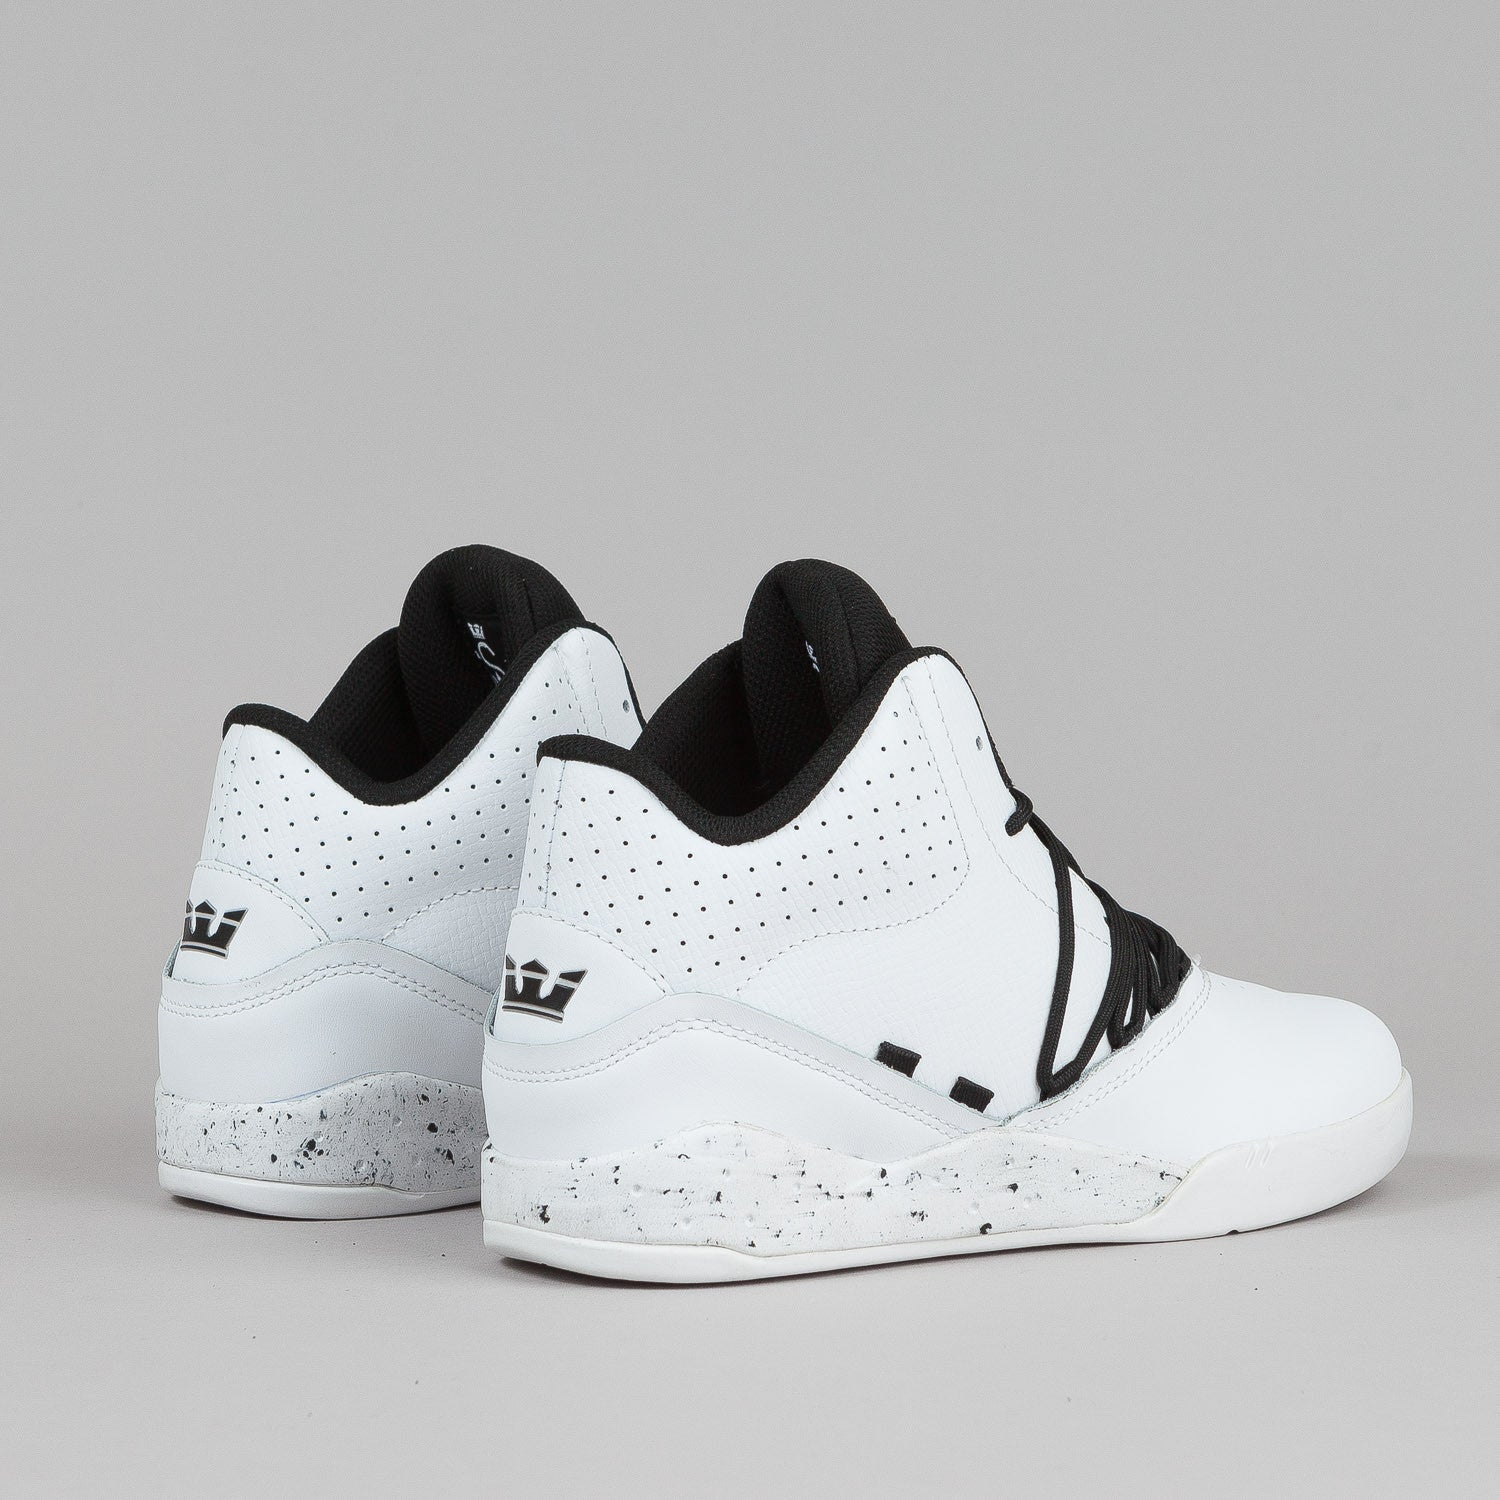 Supra Estaban Shoes - White / Black / White